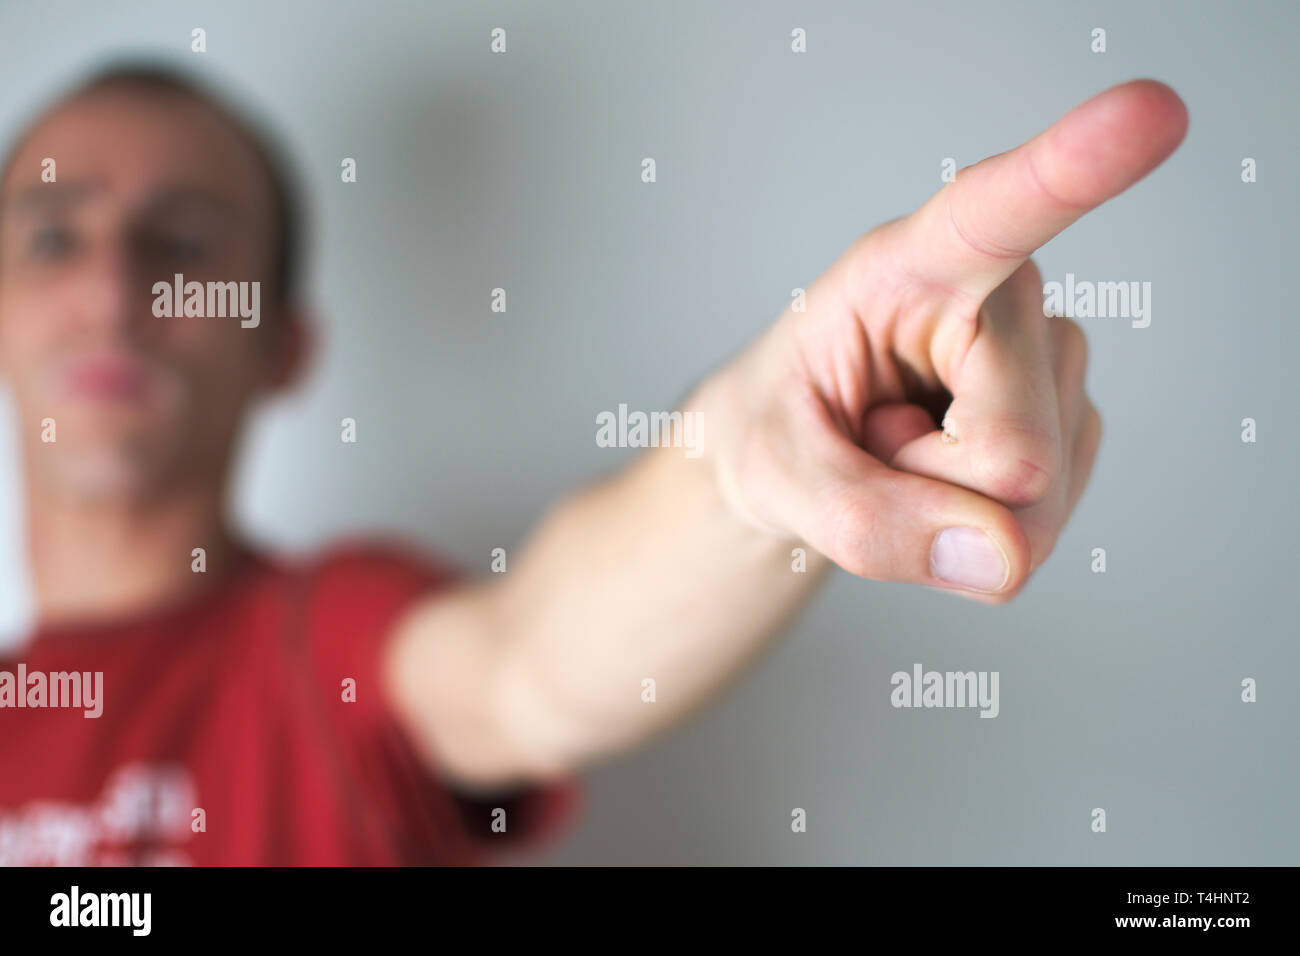 A man pointing away from the camera, as if sending someone away. - Stock Image